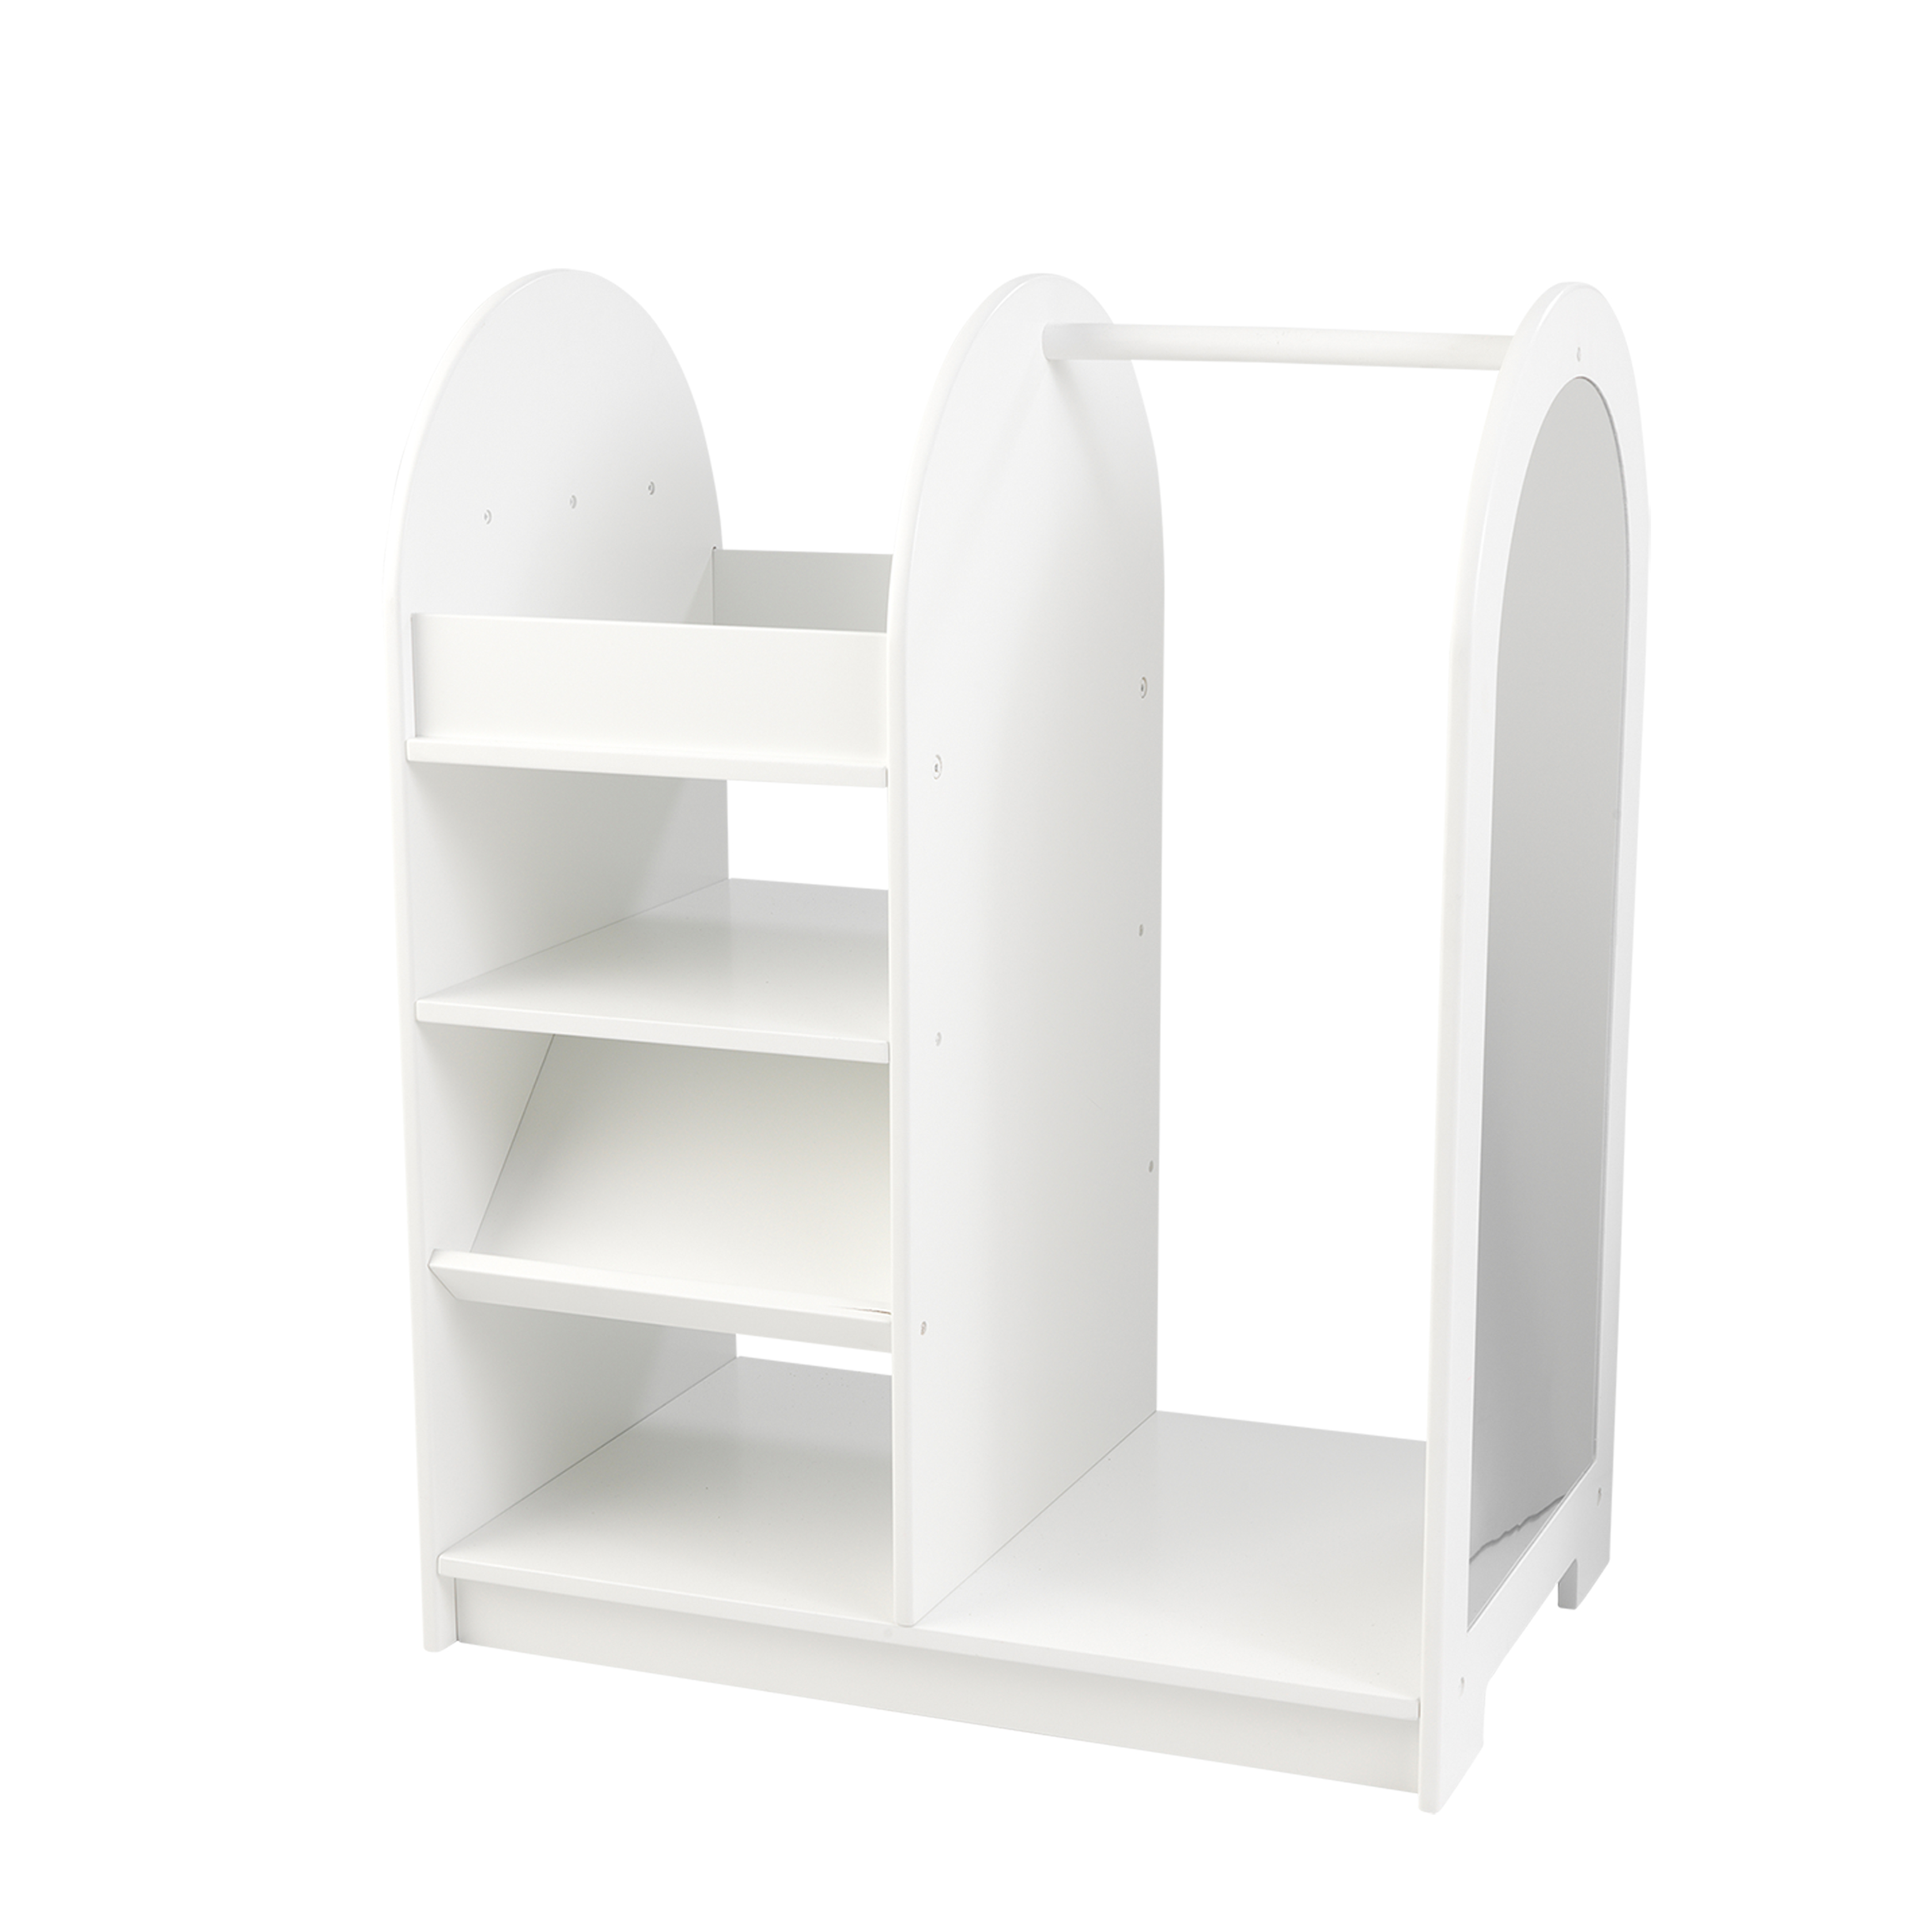 Nice KidKraft Letu0027s Play Dress Up Unit, White   Walmart.com